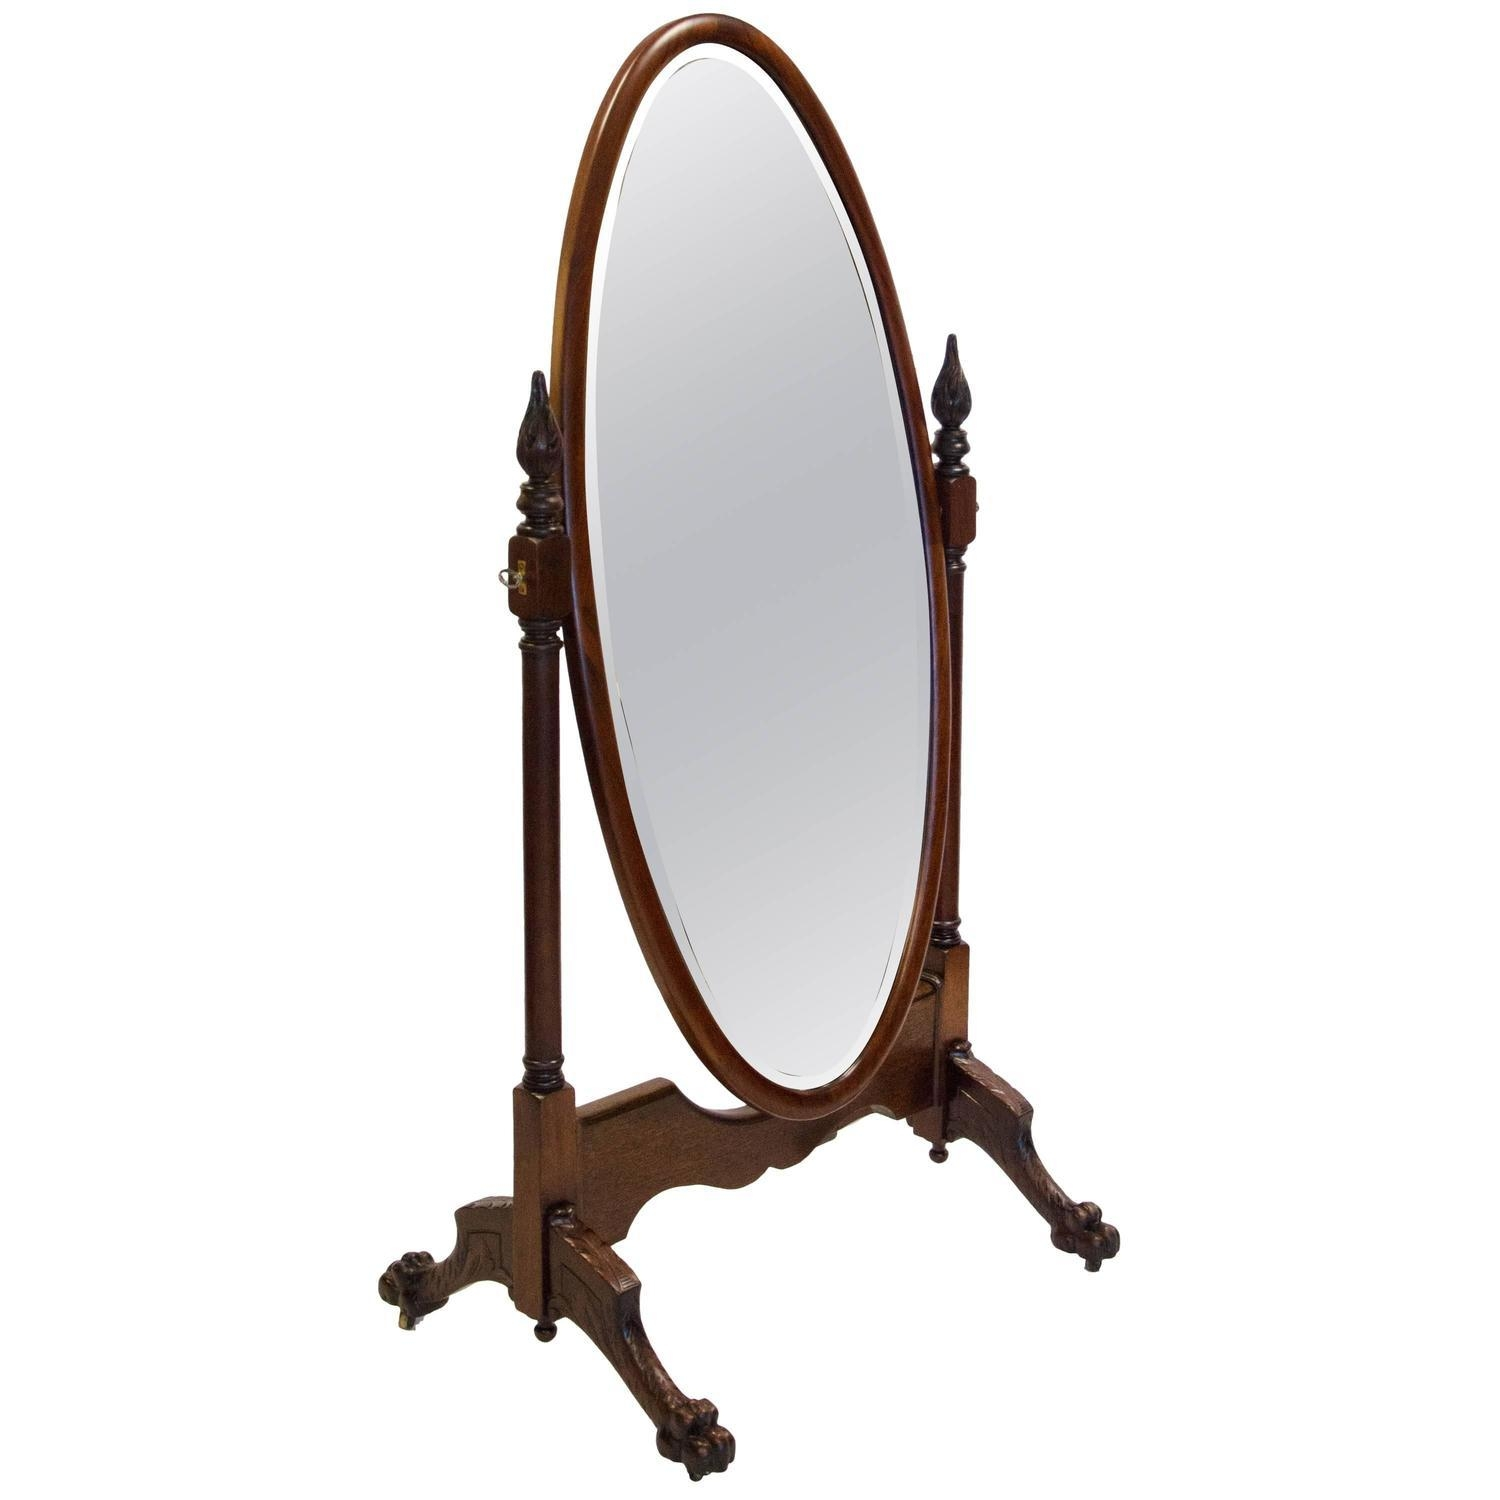 Antique & Vintage Floor Mirrors And Full Length Mirrors For Sale Pertaining To Vintage Full Length Mirror (Image 2 of 20)